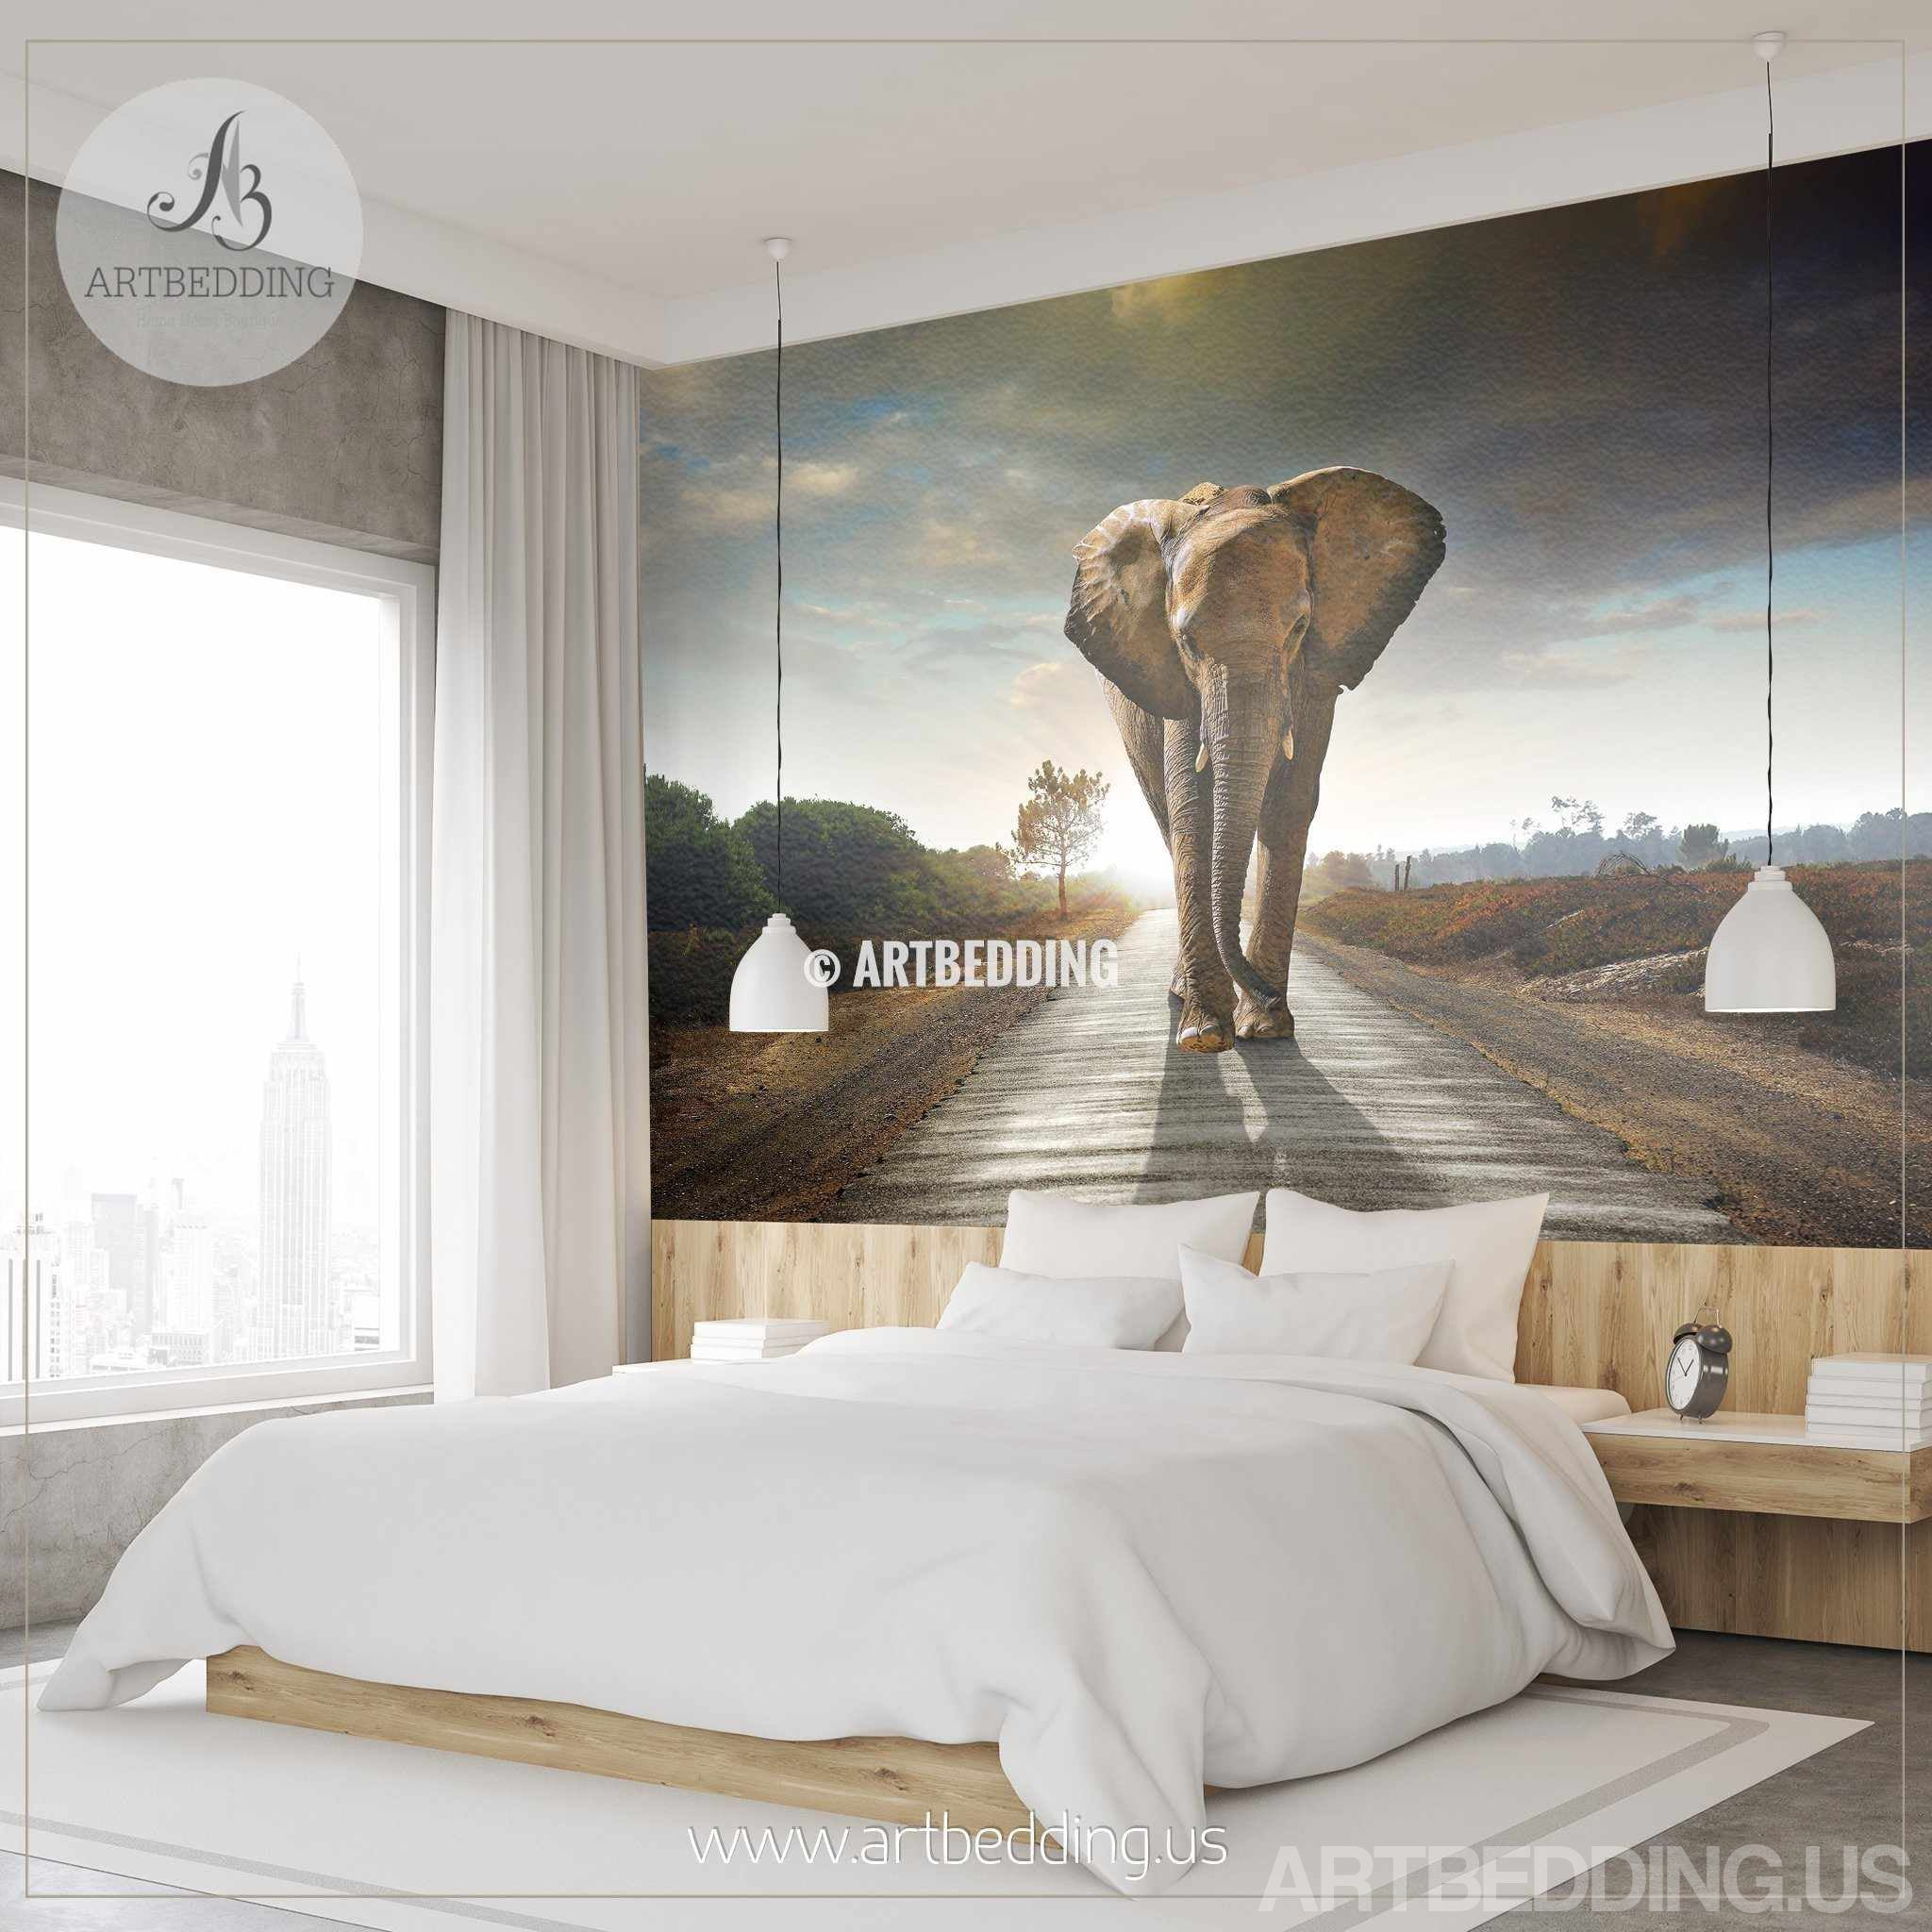 ... African Elephant Wall Mural, Elephant Self Adhesive Peel U0026 Stick Photo  Mural, Wild Africa ... Part 44